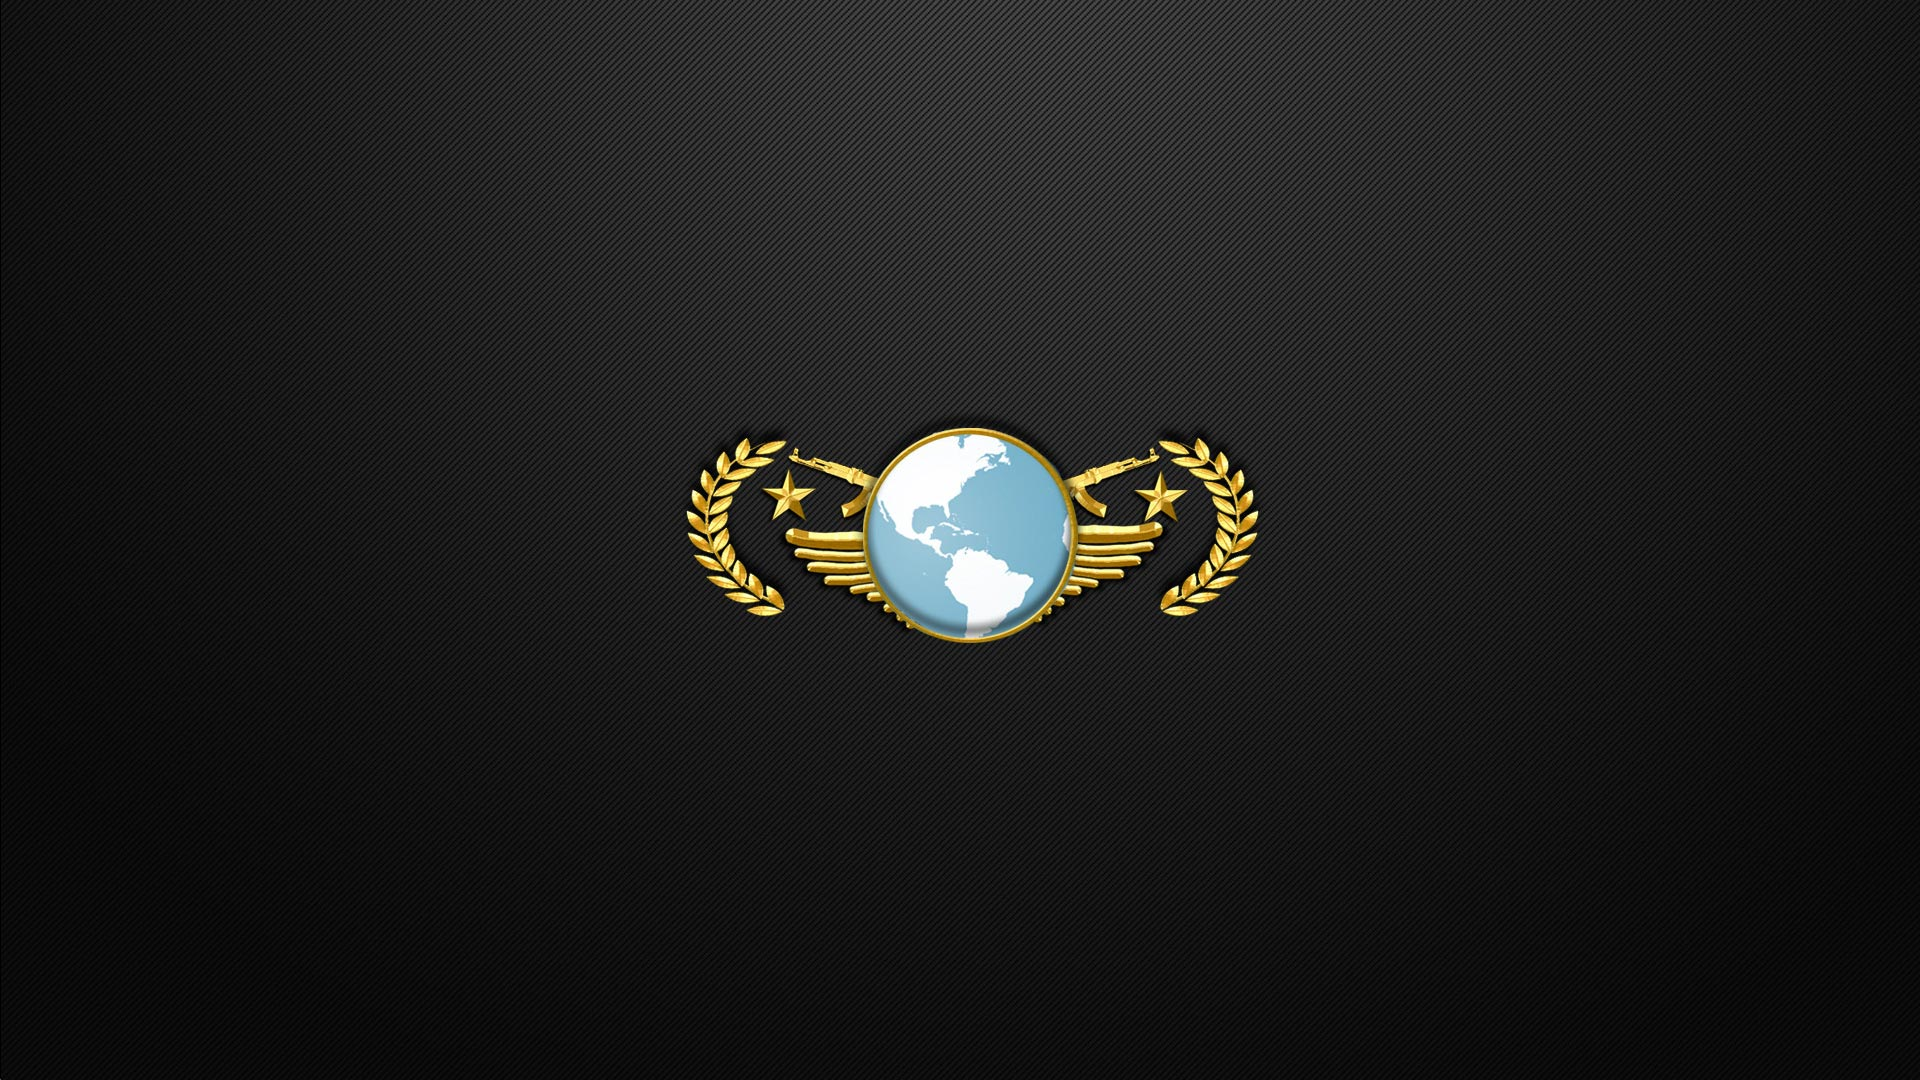 cs-go-rank-global-elite